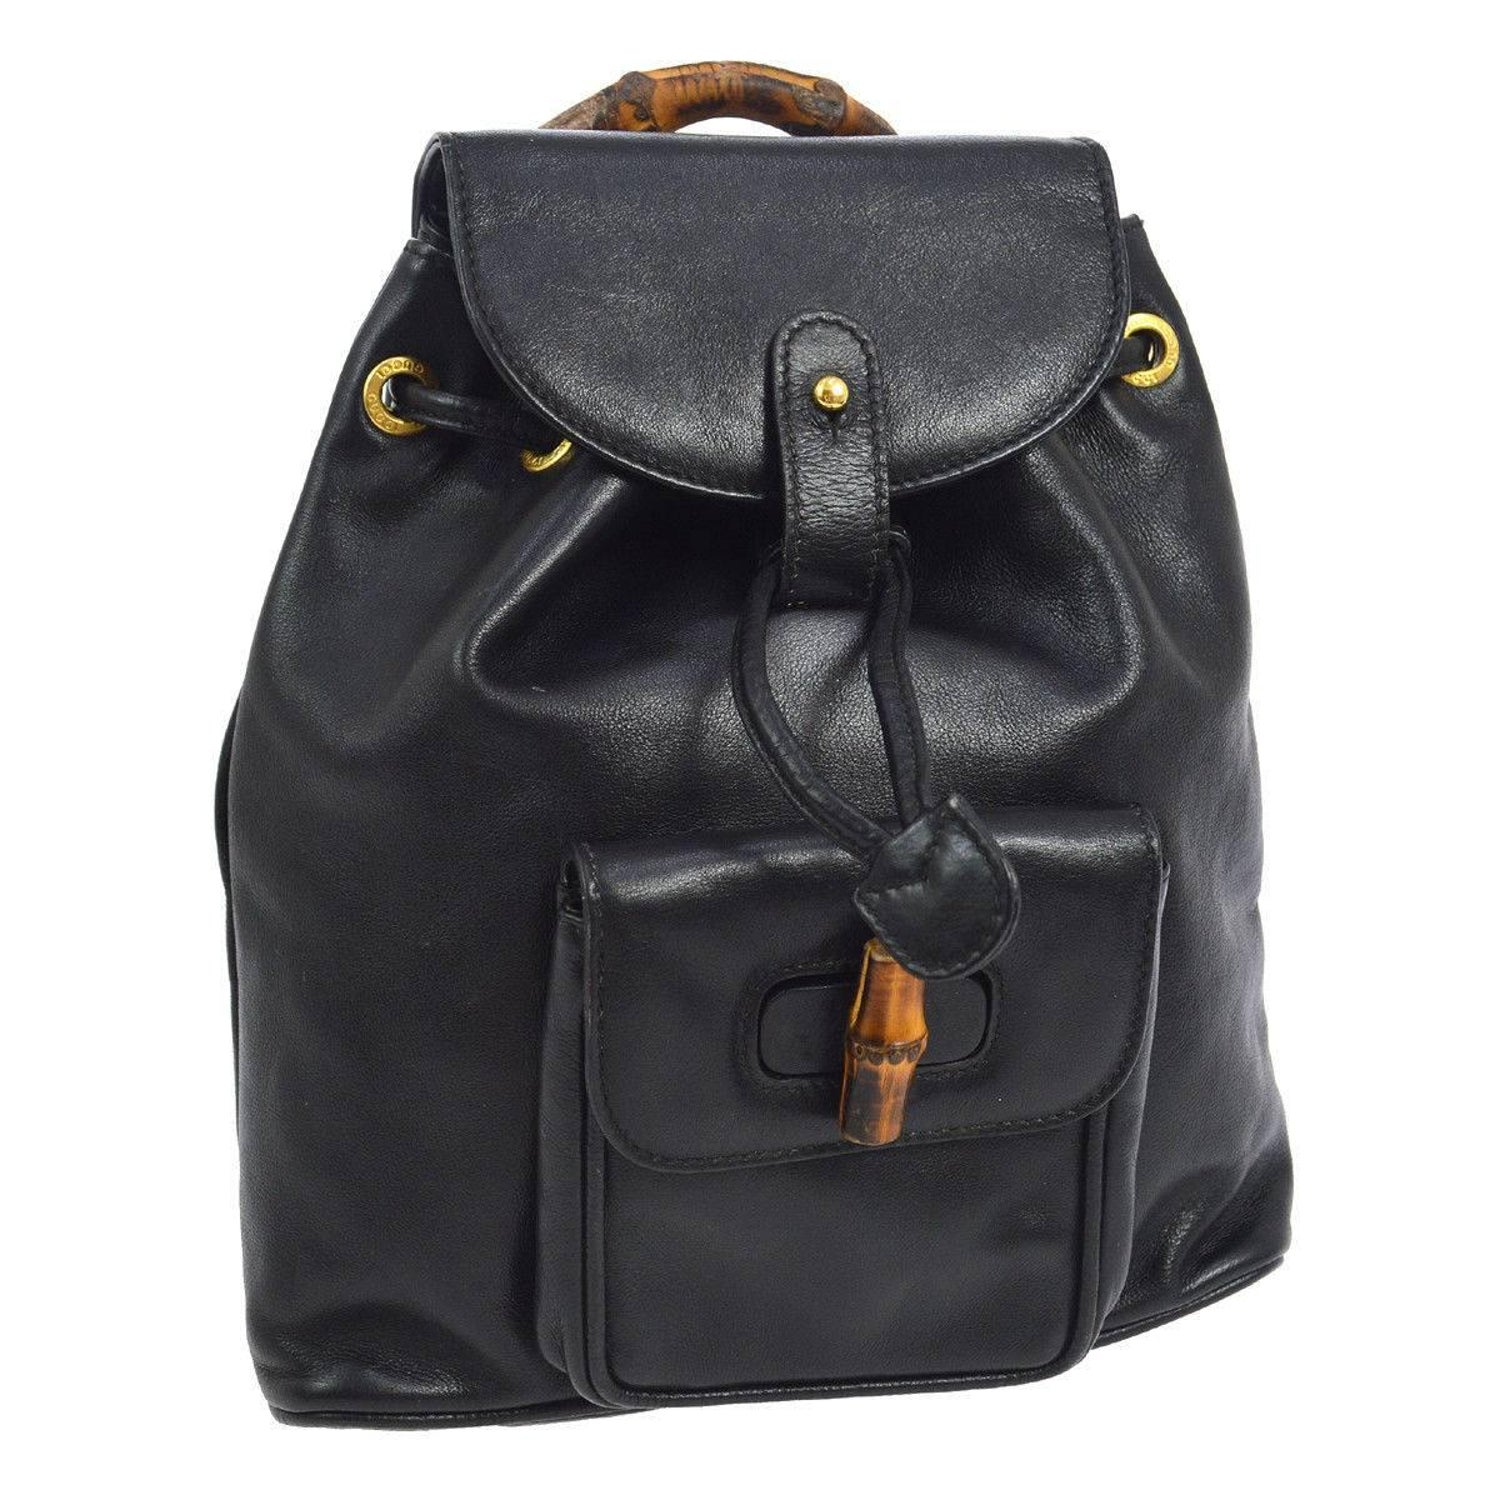 d794411a6c9b Gucci Black Leather Bamboo 2 in 1 Top Handle Satchel Shoulder Backpack Bag  For Sale at 1stdibs